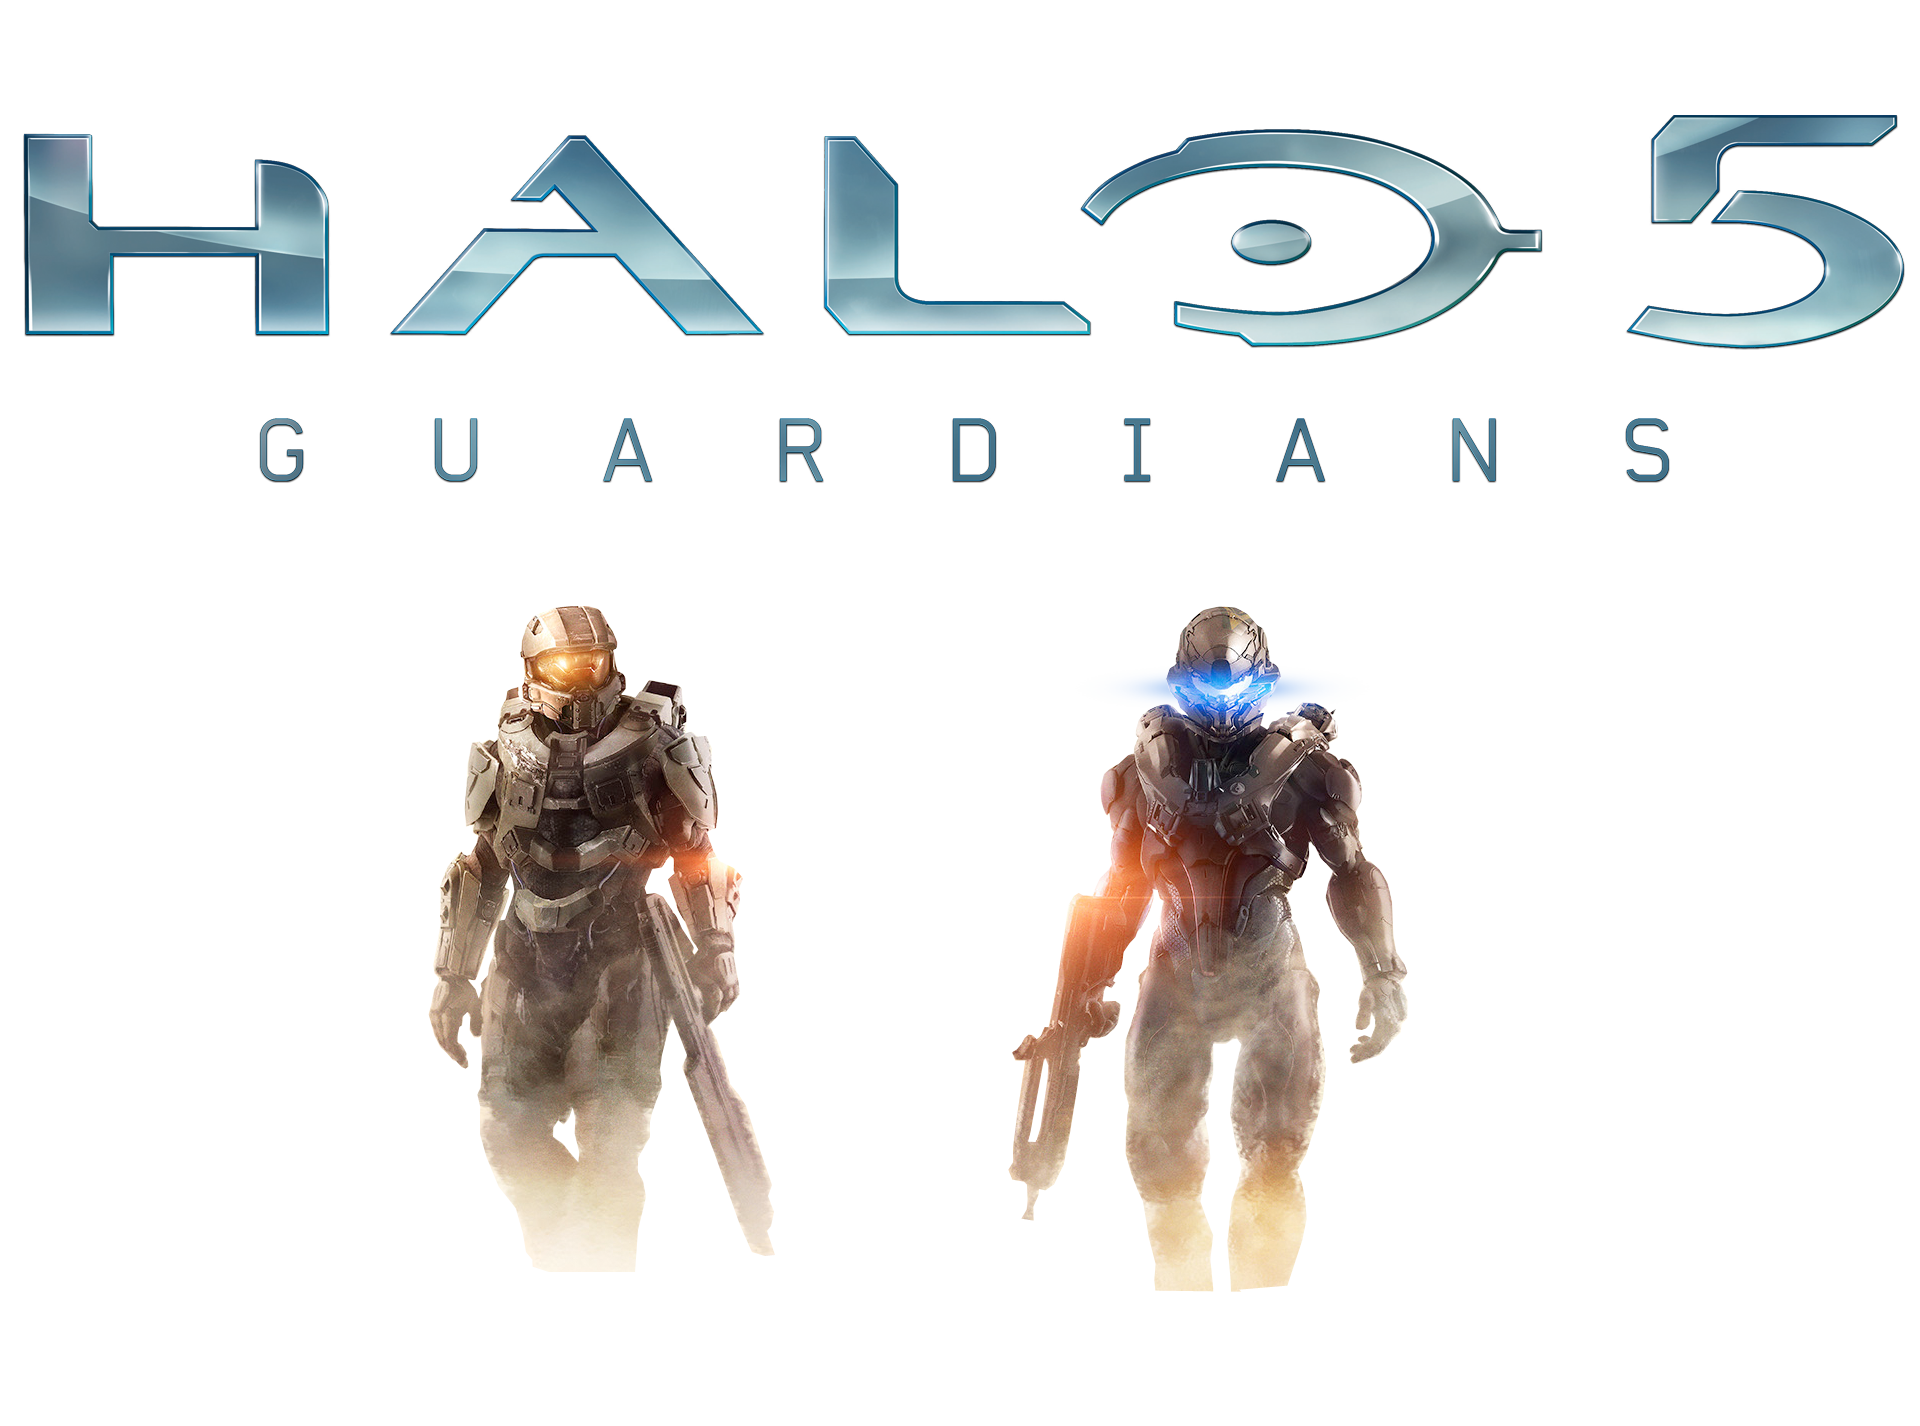 Halo 5 Guardians Logo And Render Assets By Crussong Deviantart Com On Deviantart Halo 5 Guardians Halo Halo 5